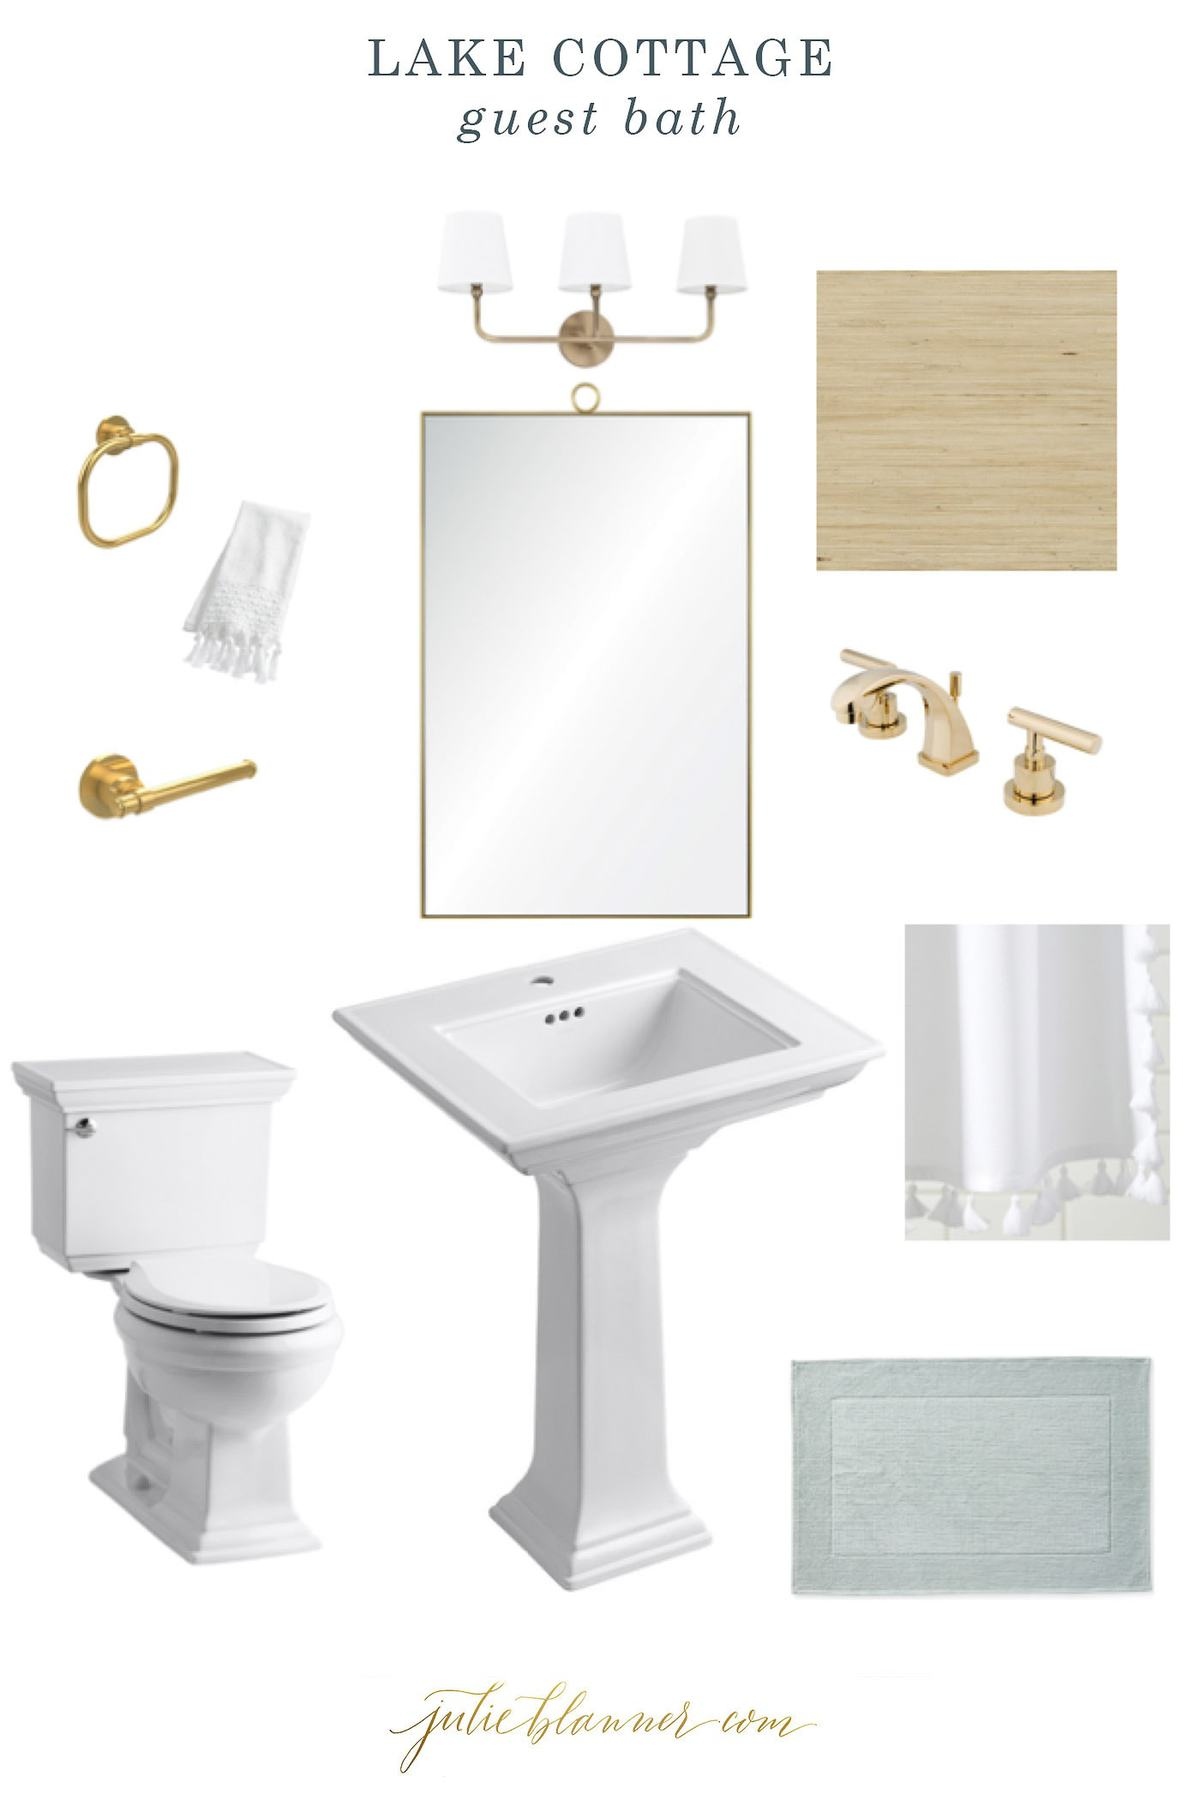 An interior design mood board for a modern bathroom.